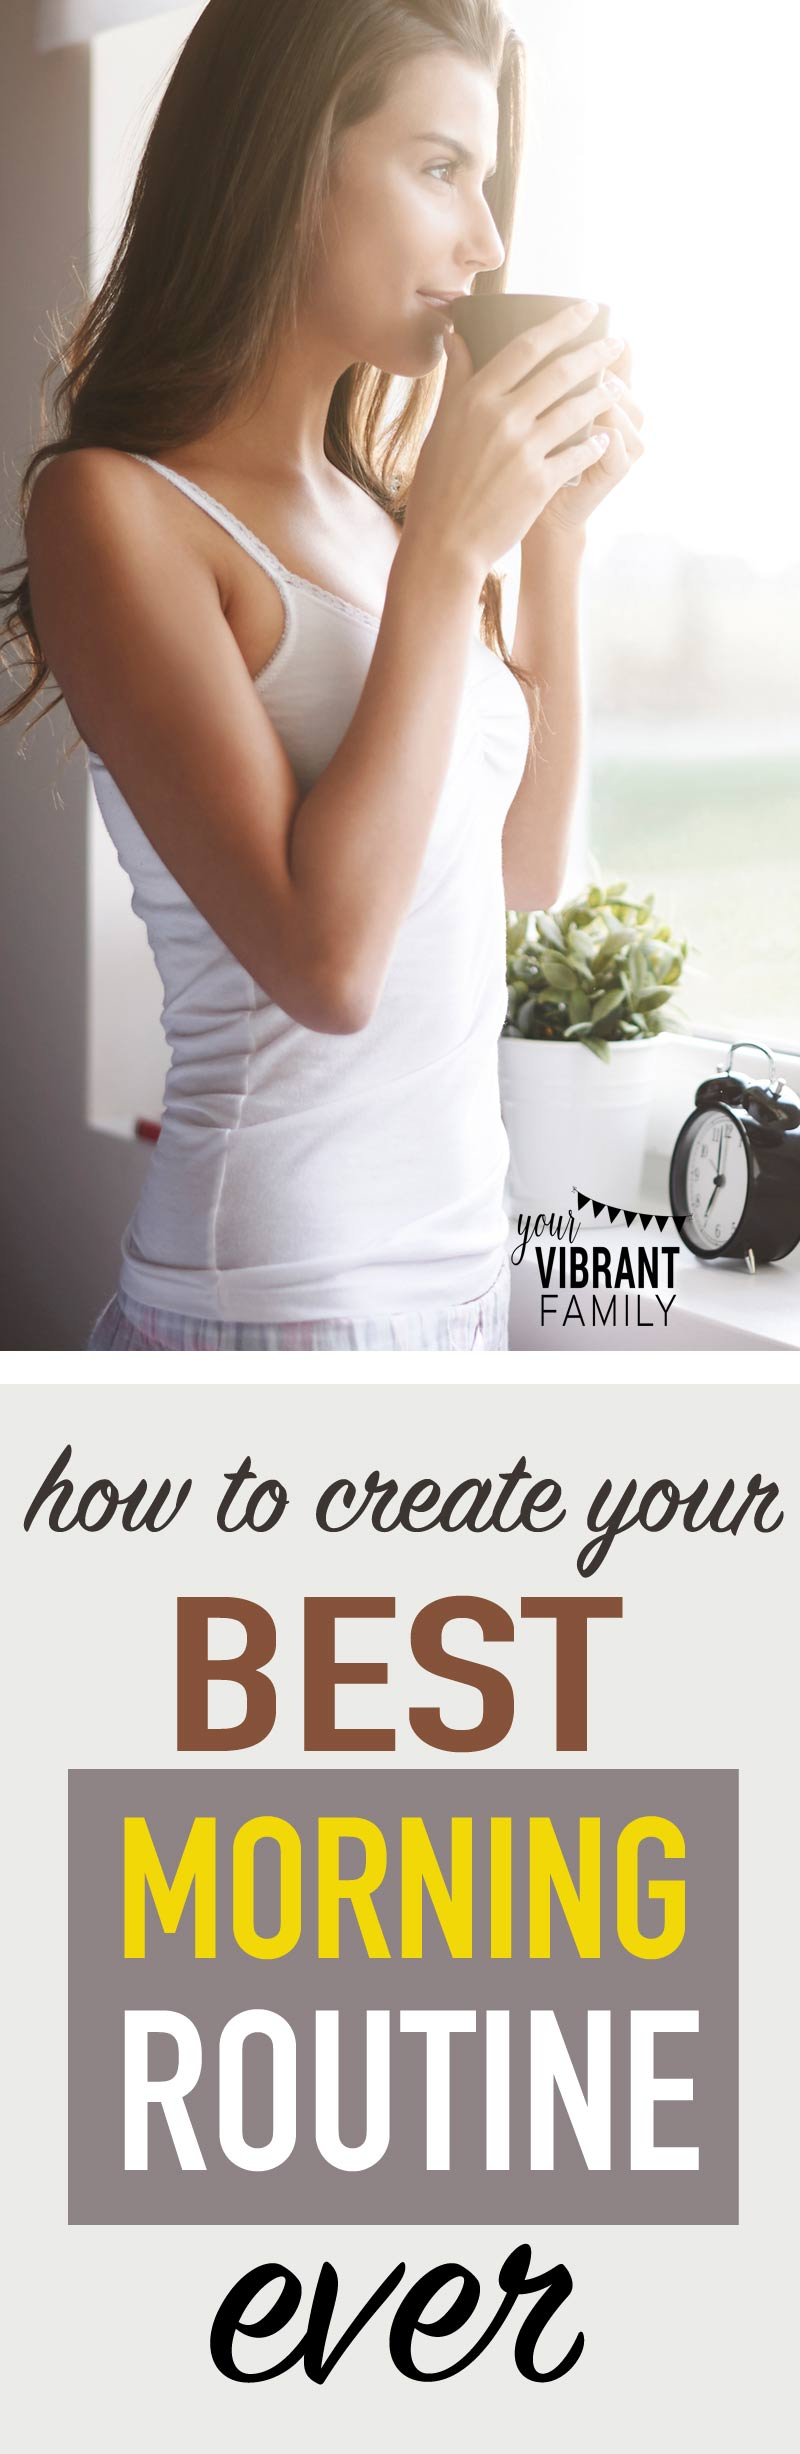 Ready to wake up refreshed and ready to start the day? Every mom needs these tips to the best morning routine ever! No more waking up to chaos and craziness!